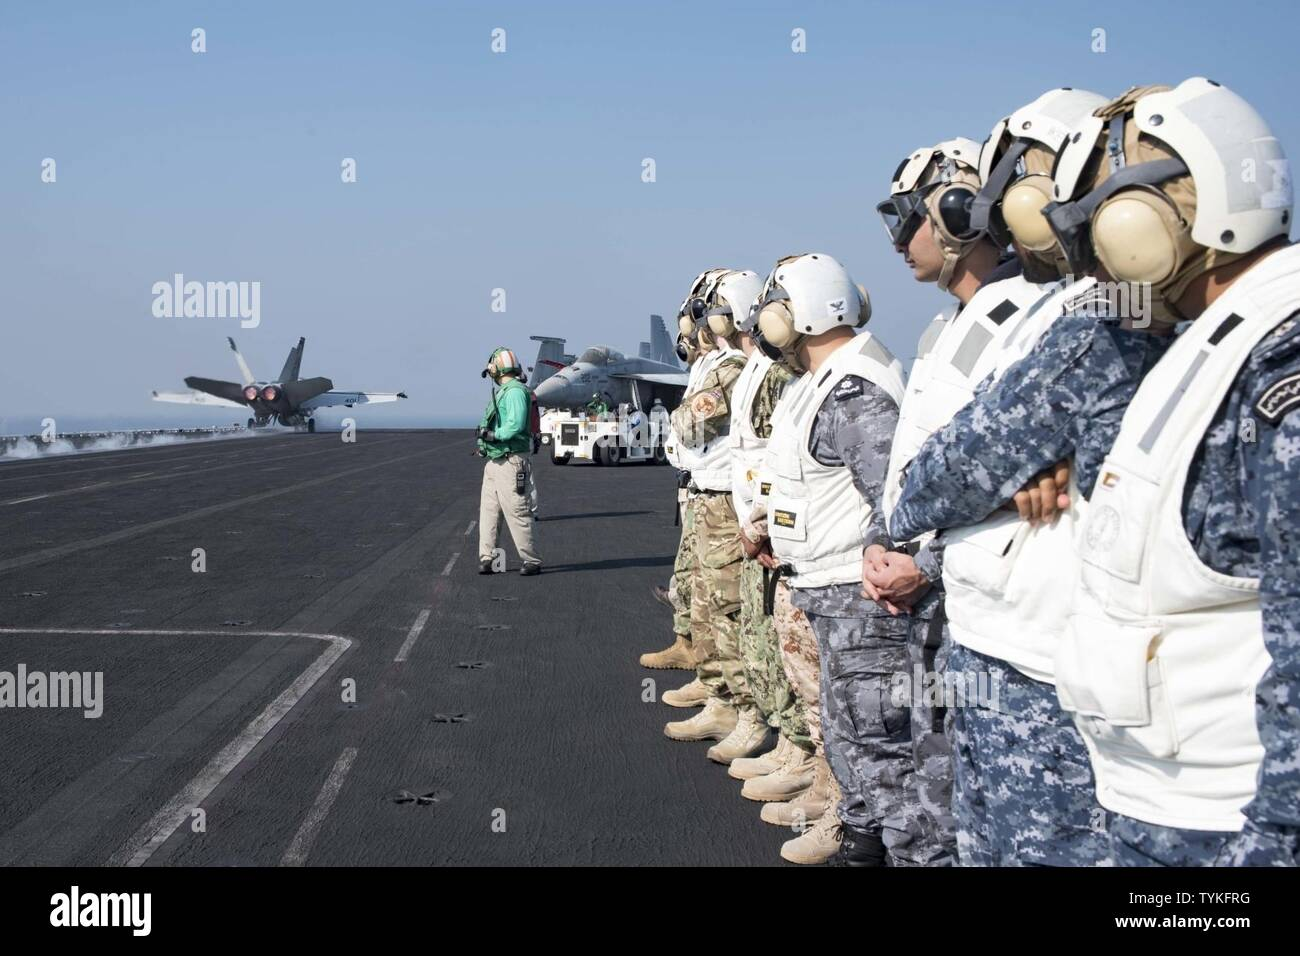 GULF (Nov. 14, 2016) Staff members from Combined Task Force (CTF) 152 observe operations on the flight deck of the aircraft carrier USS Dwight D. Eisenhower (CVN 69) (Ike) during a theater security cooperation embark. Ike and its Carrier Strike Group are deployed in support of Operation Inherent Resolve, maritime security operations and theater security cooperation efforts in the U.S. 5th Fleet area of operations. - Stock Image